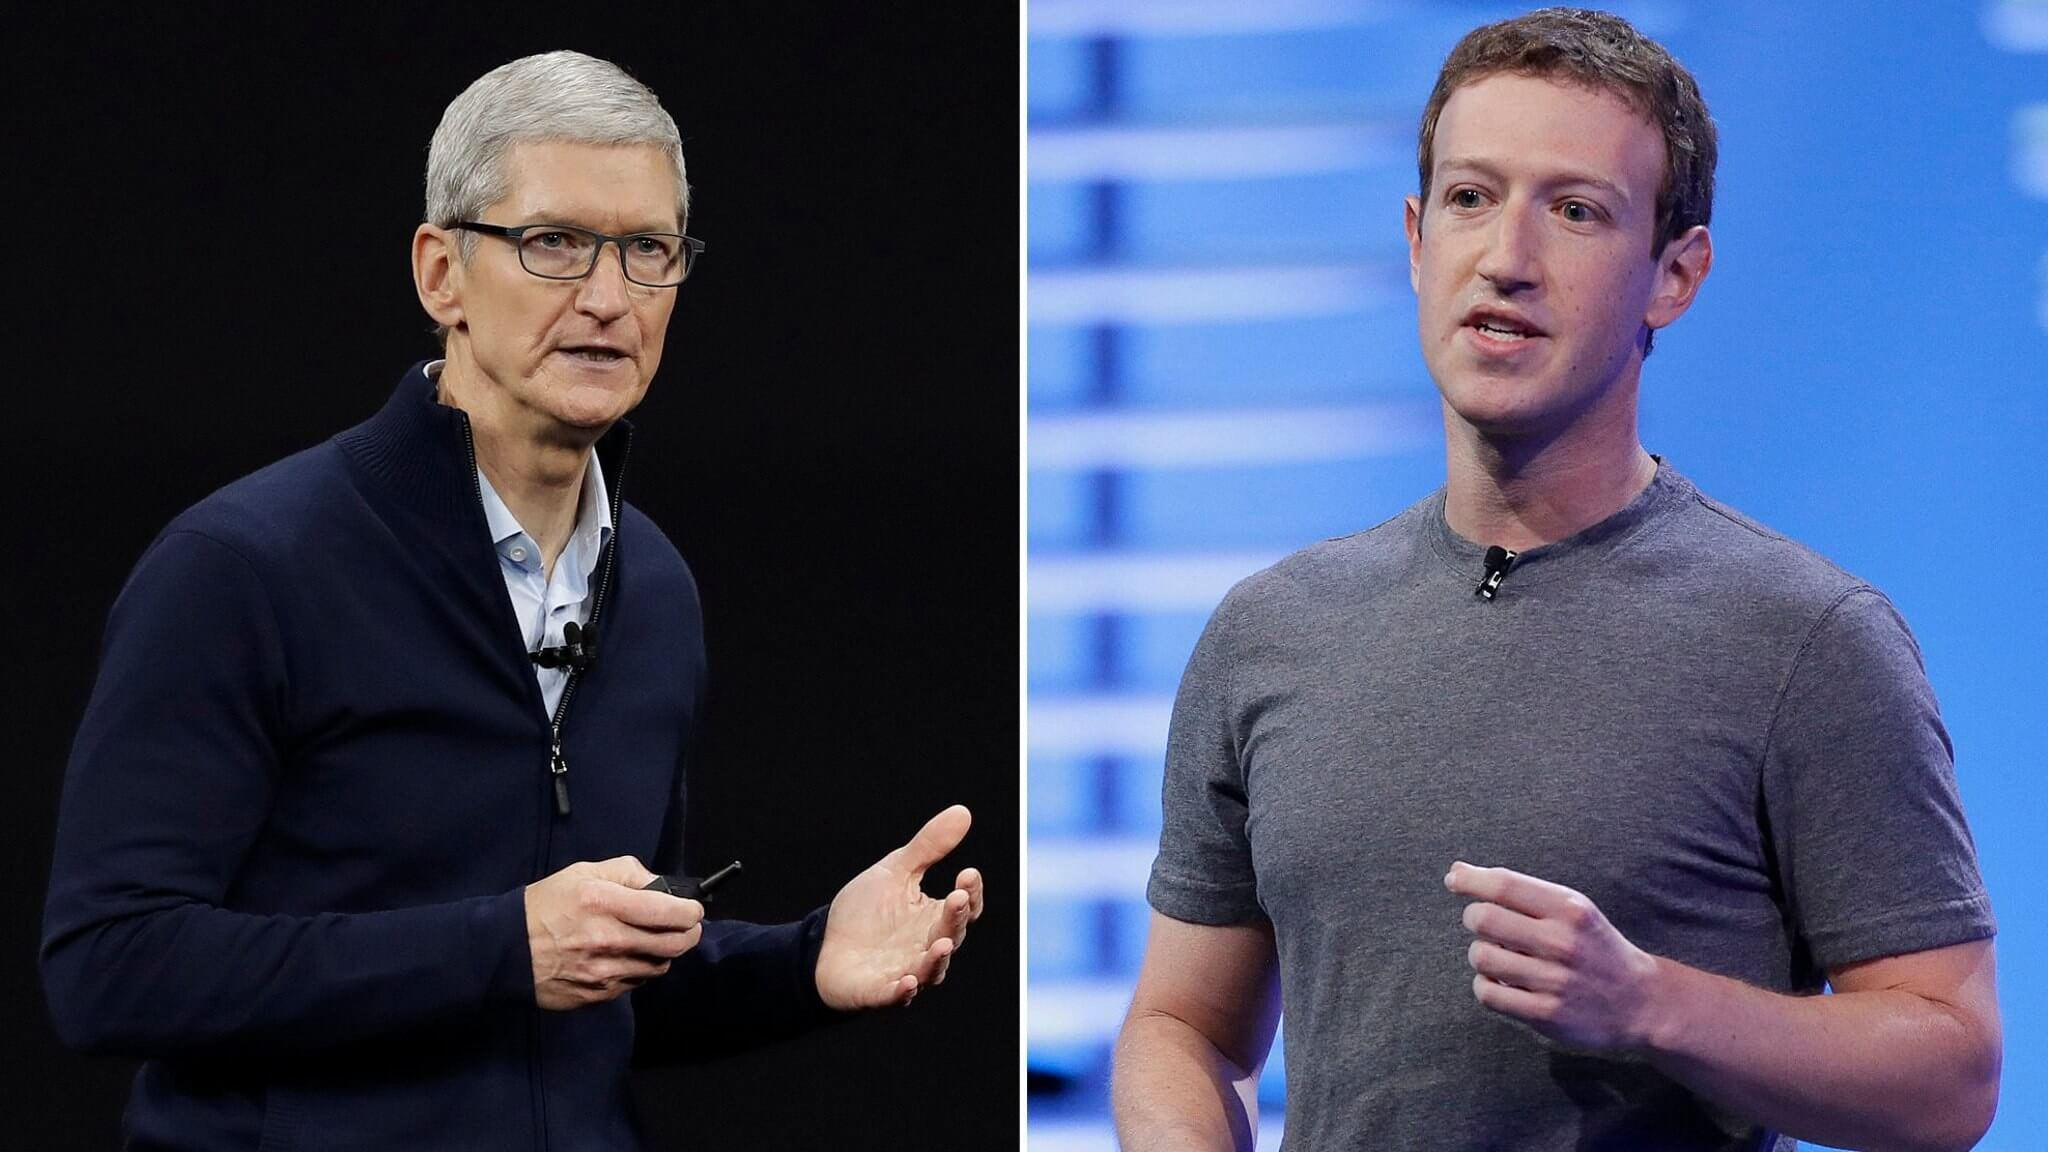 Zuckerberg Vs. Cook: CEOs Continue their Subtle Feud Over Business Philosophies